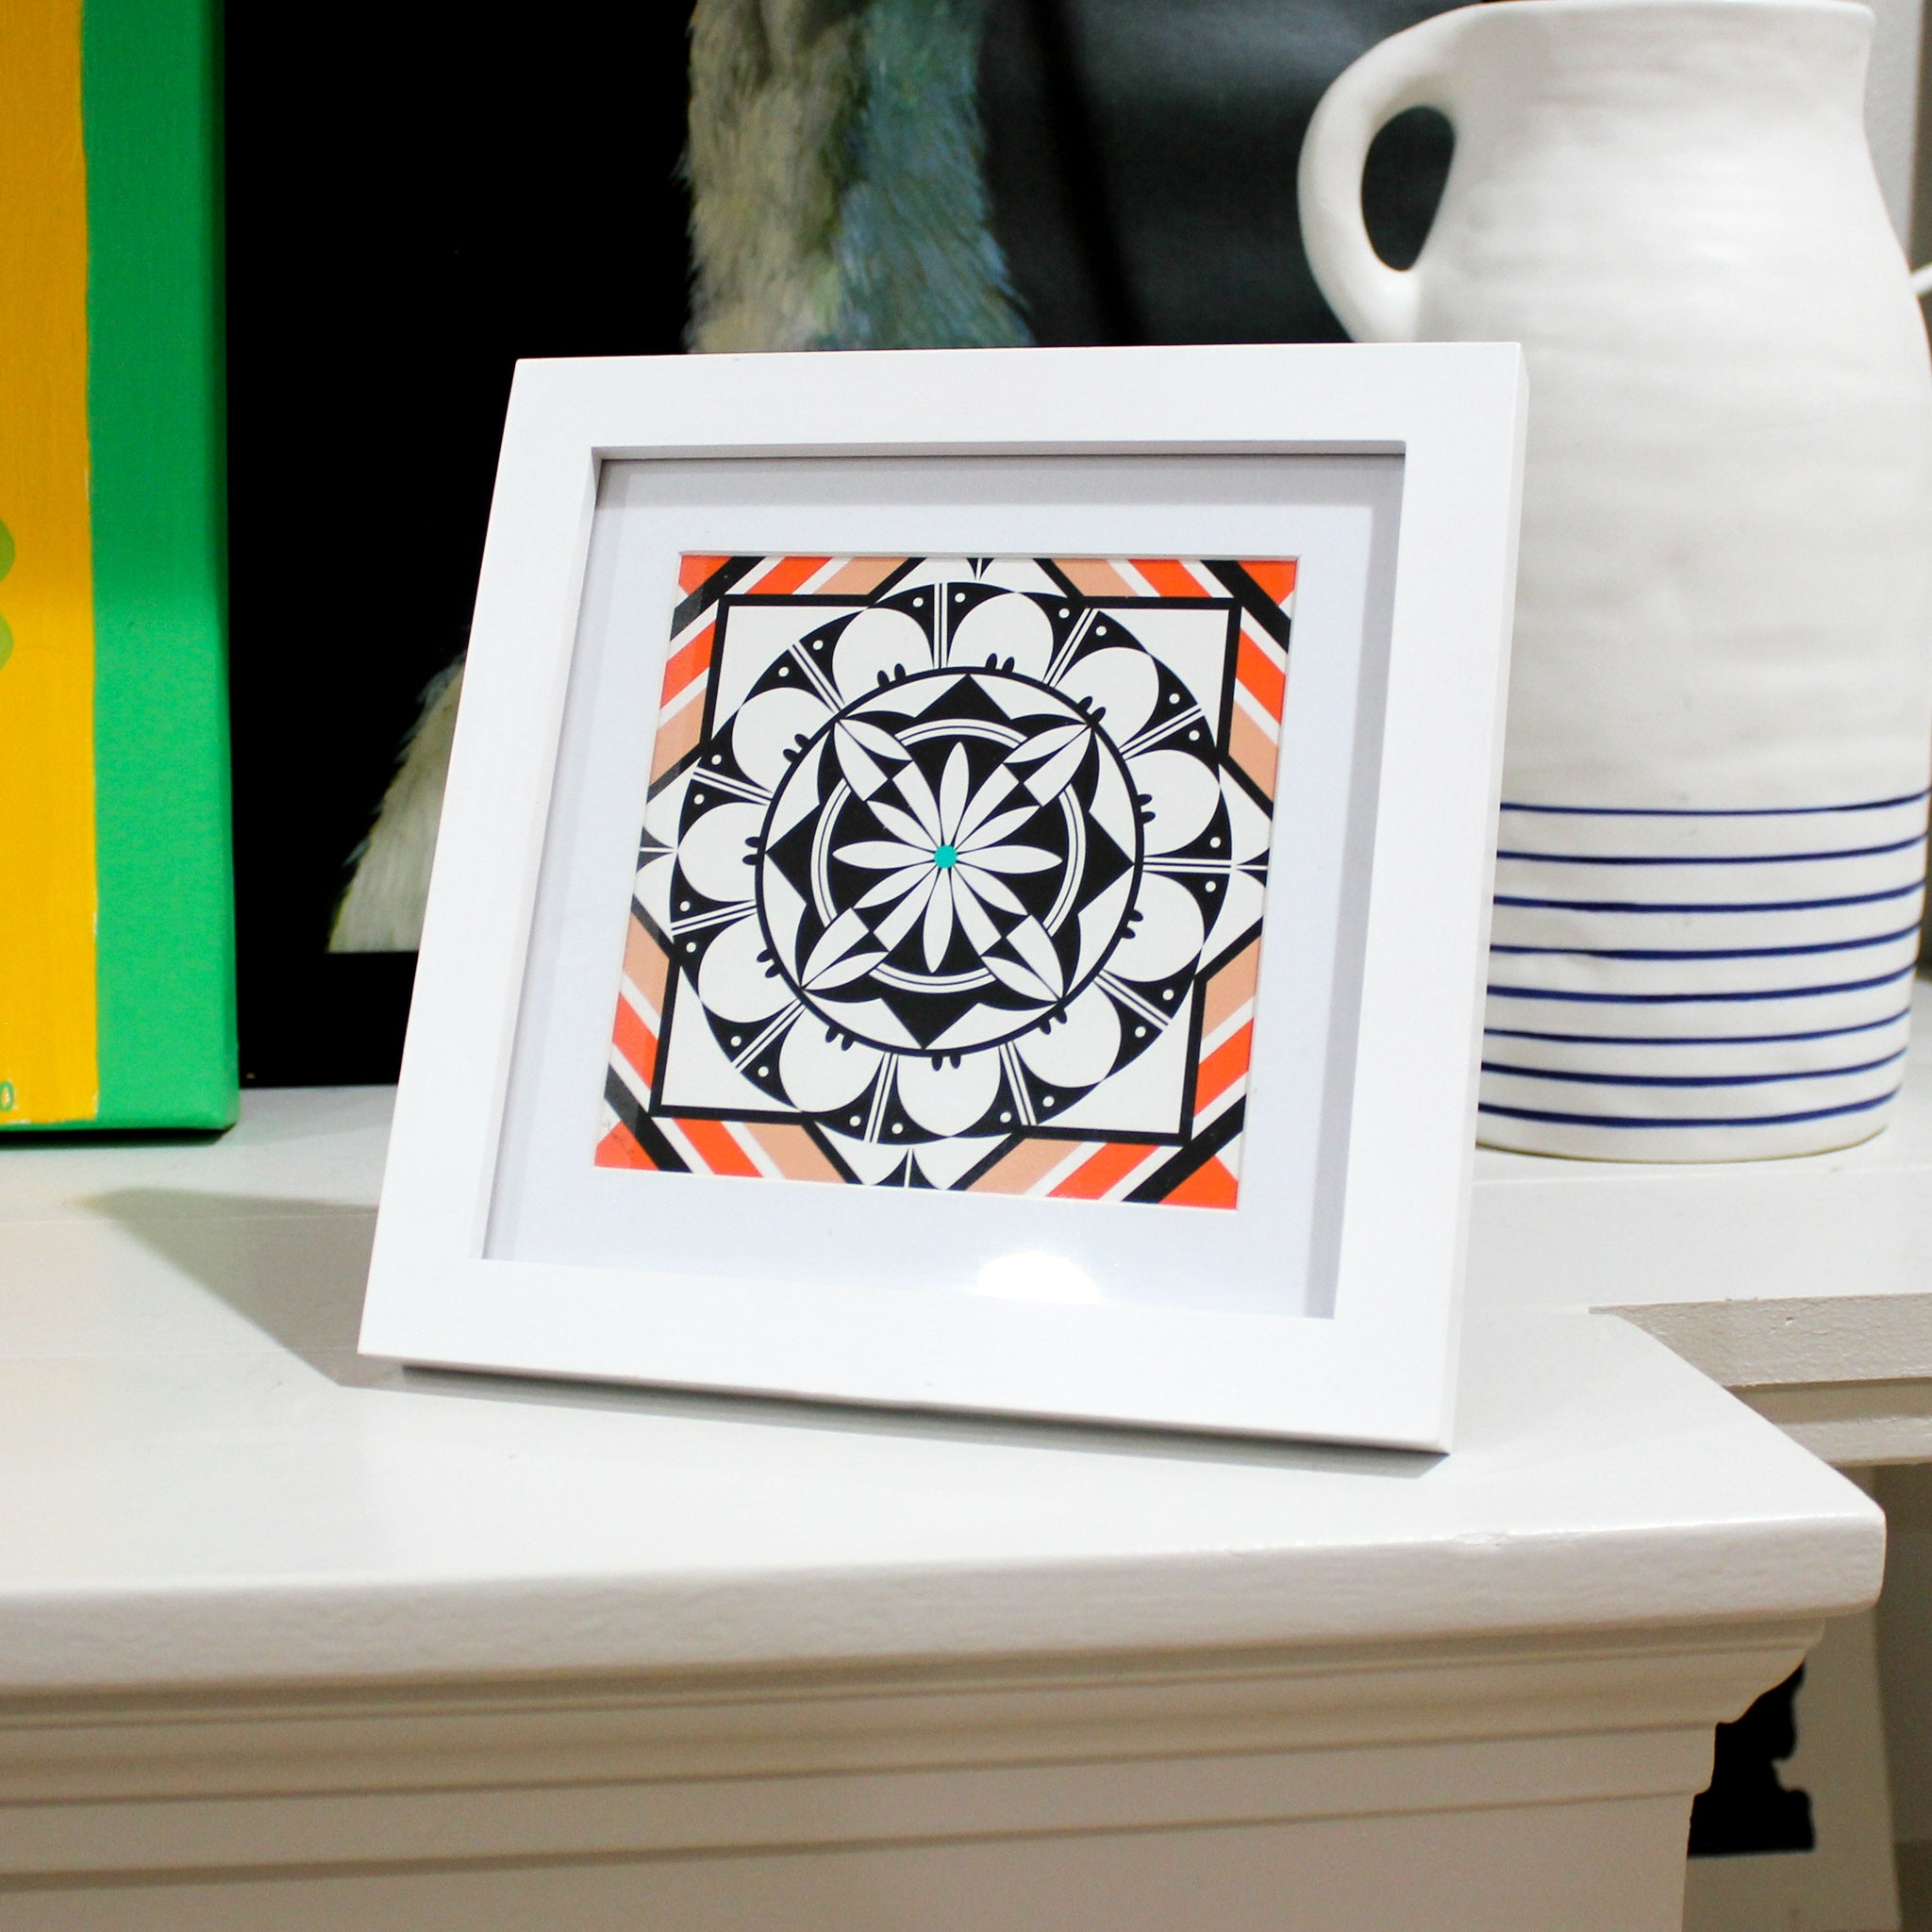 A-black-white-and-orange/red-geometric-design-with-a-flower-in-the-center-sits-on-a-shelf-in-a-white-frame